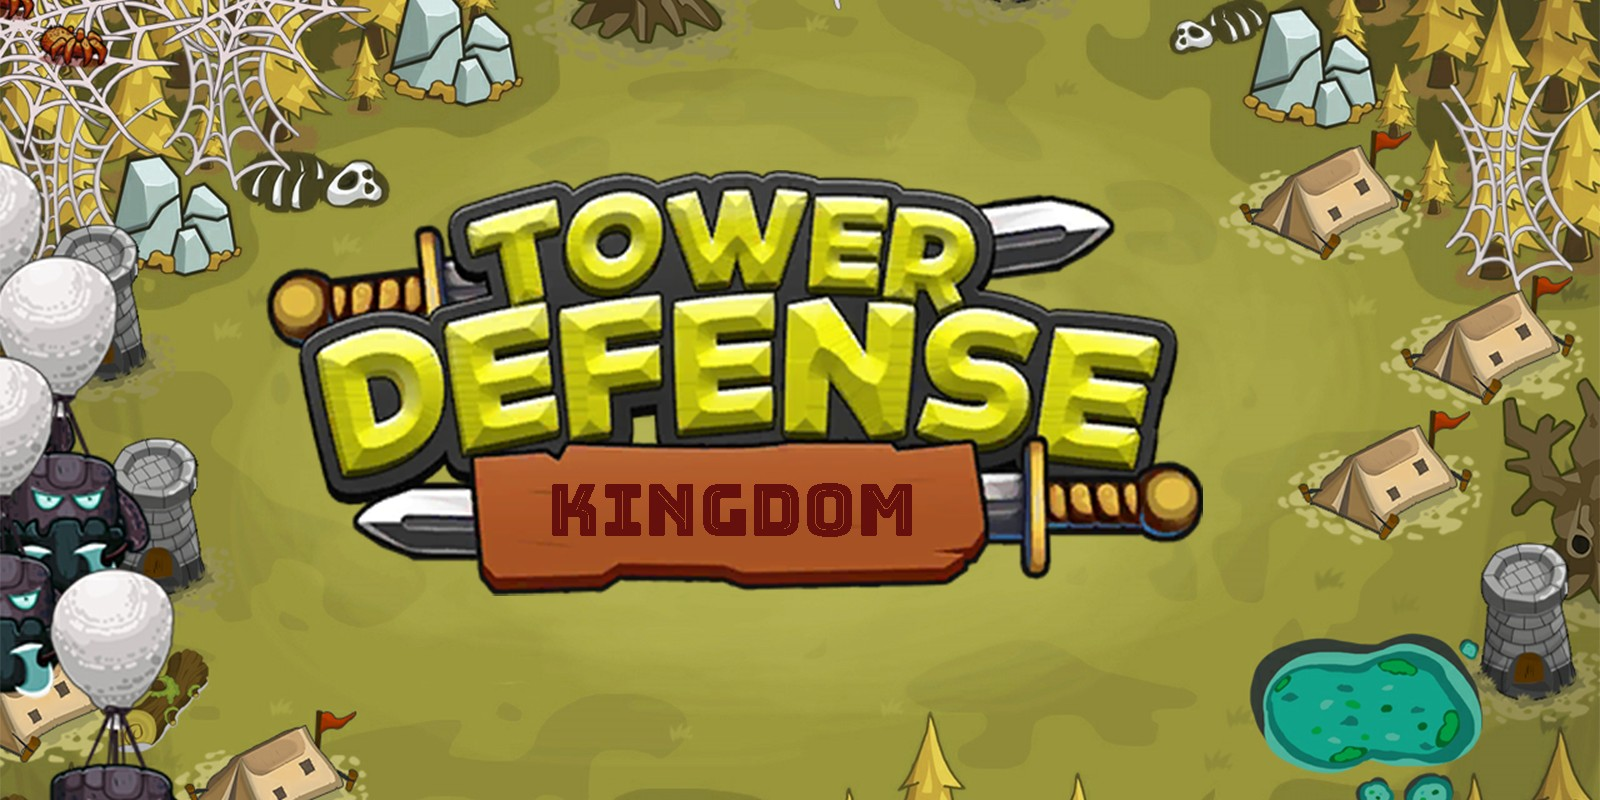 The Kingdom Defense - Complete Unity Project